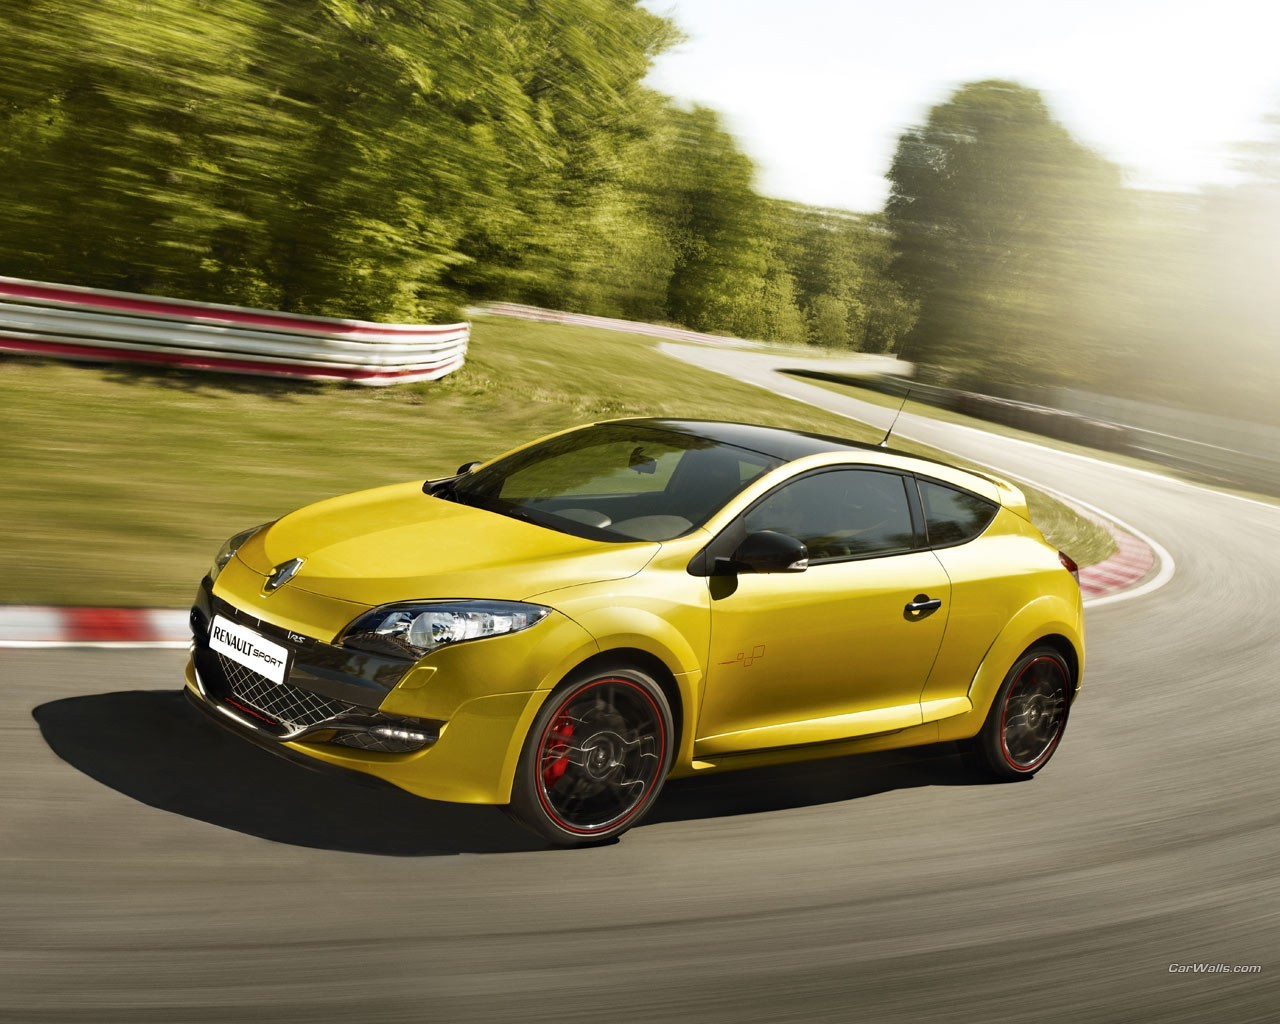 cars Sports Renault Megane HD Wallpaper